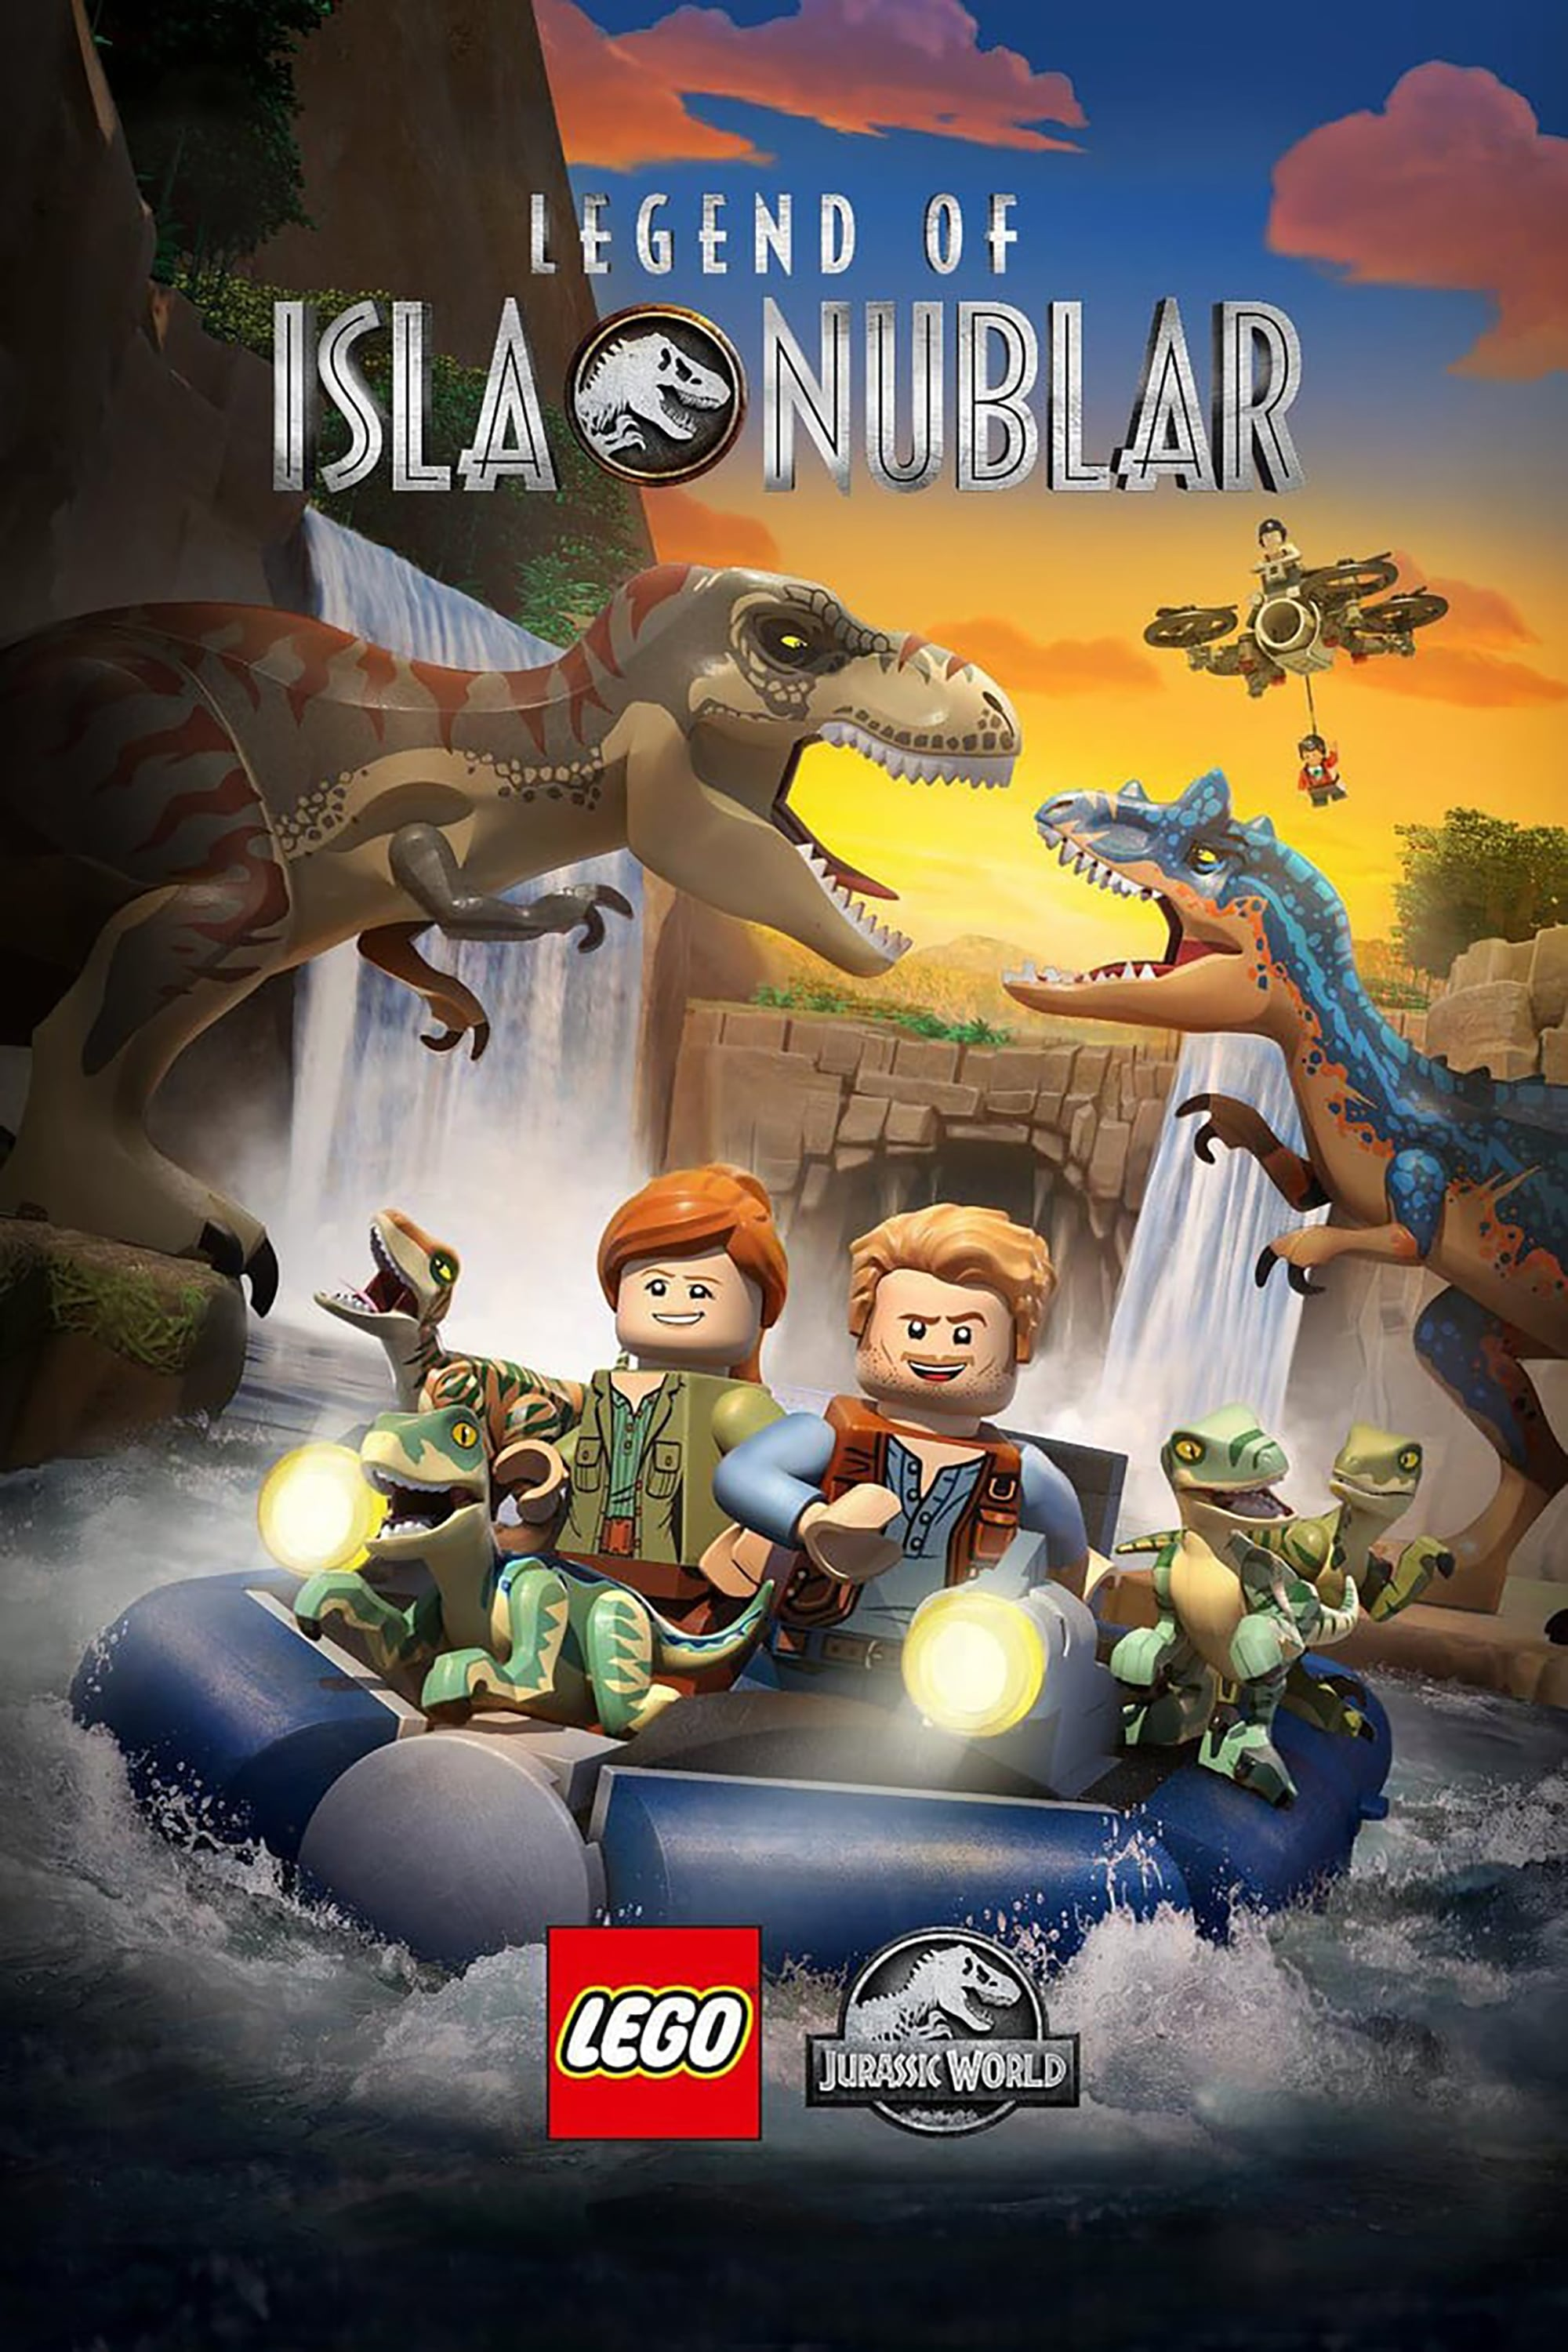 LEGO Jurassic World: Legend of Isla Nublar (2019)